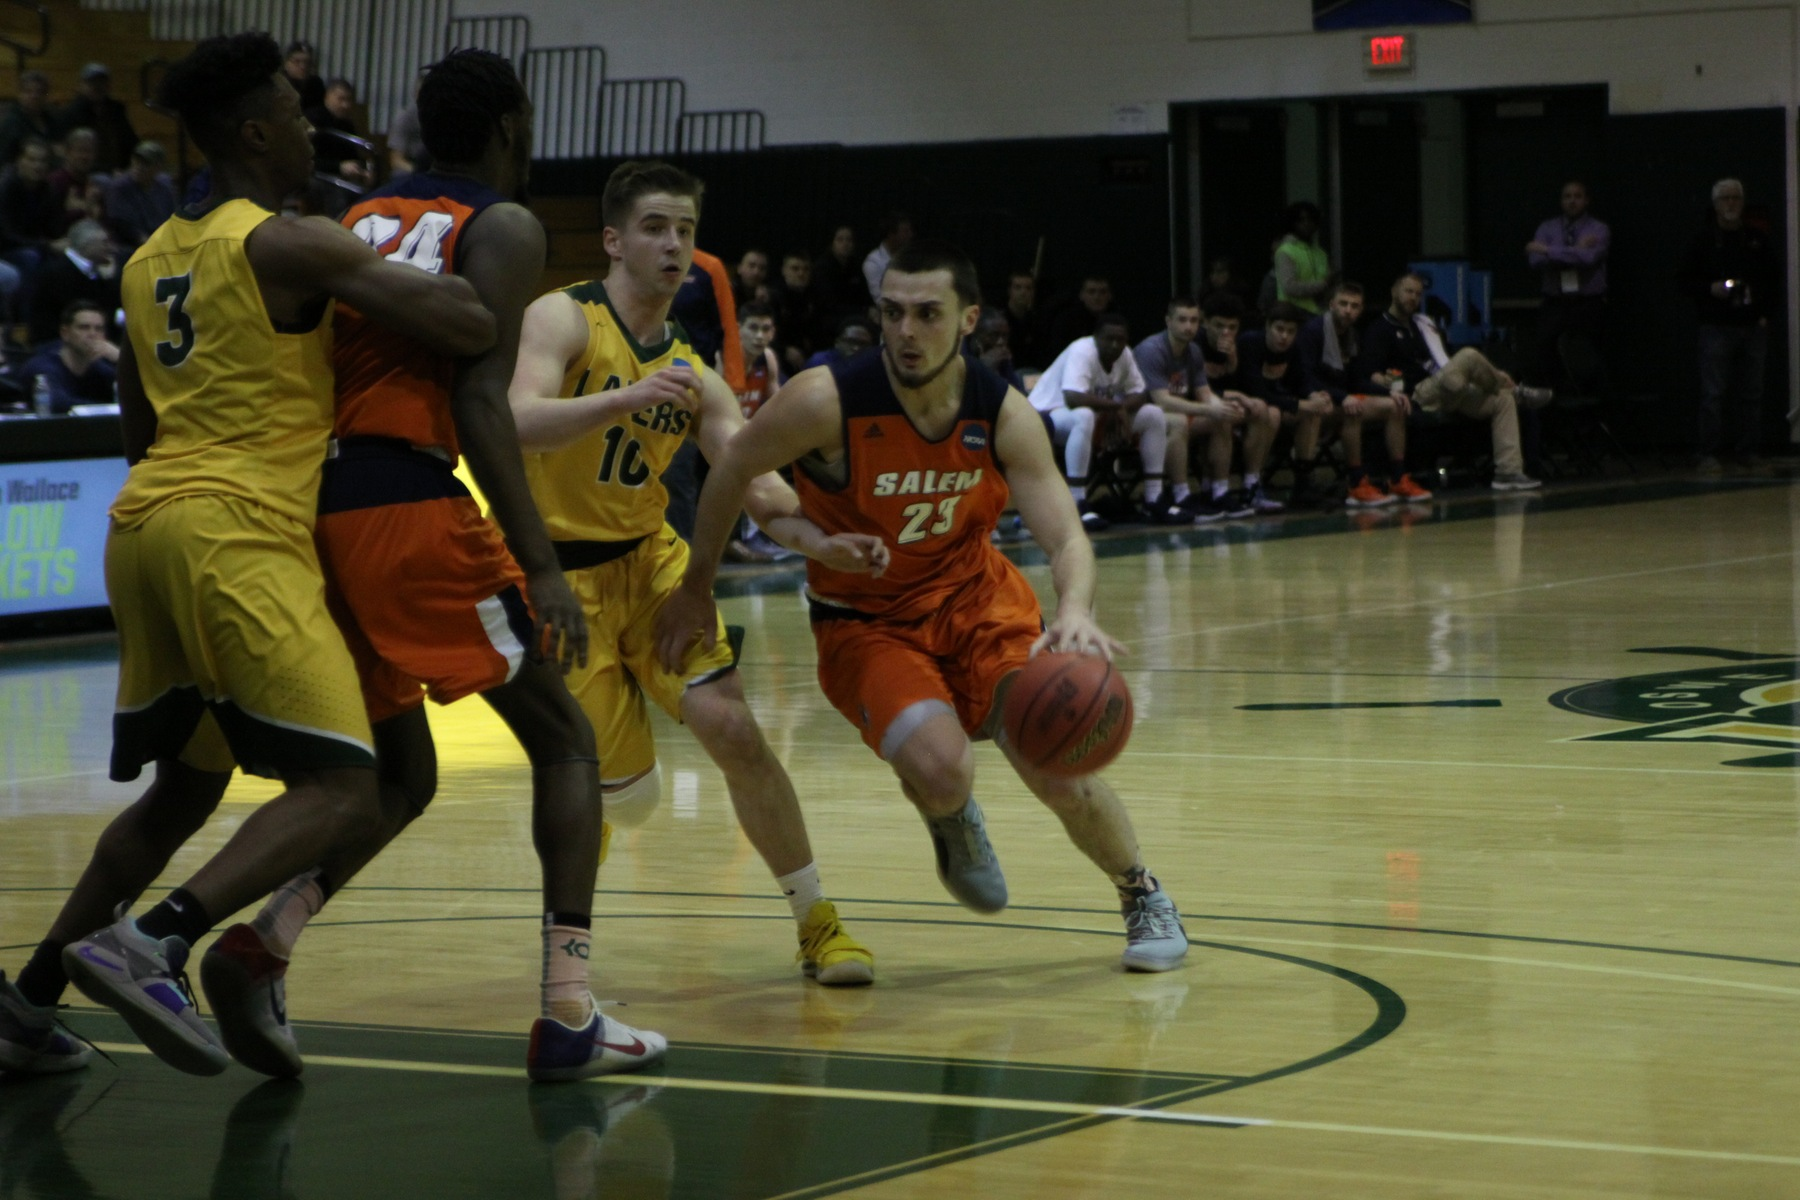 Oswego State Tops Salem State 72-59 in NCAA Tournament Opening Round